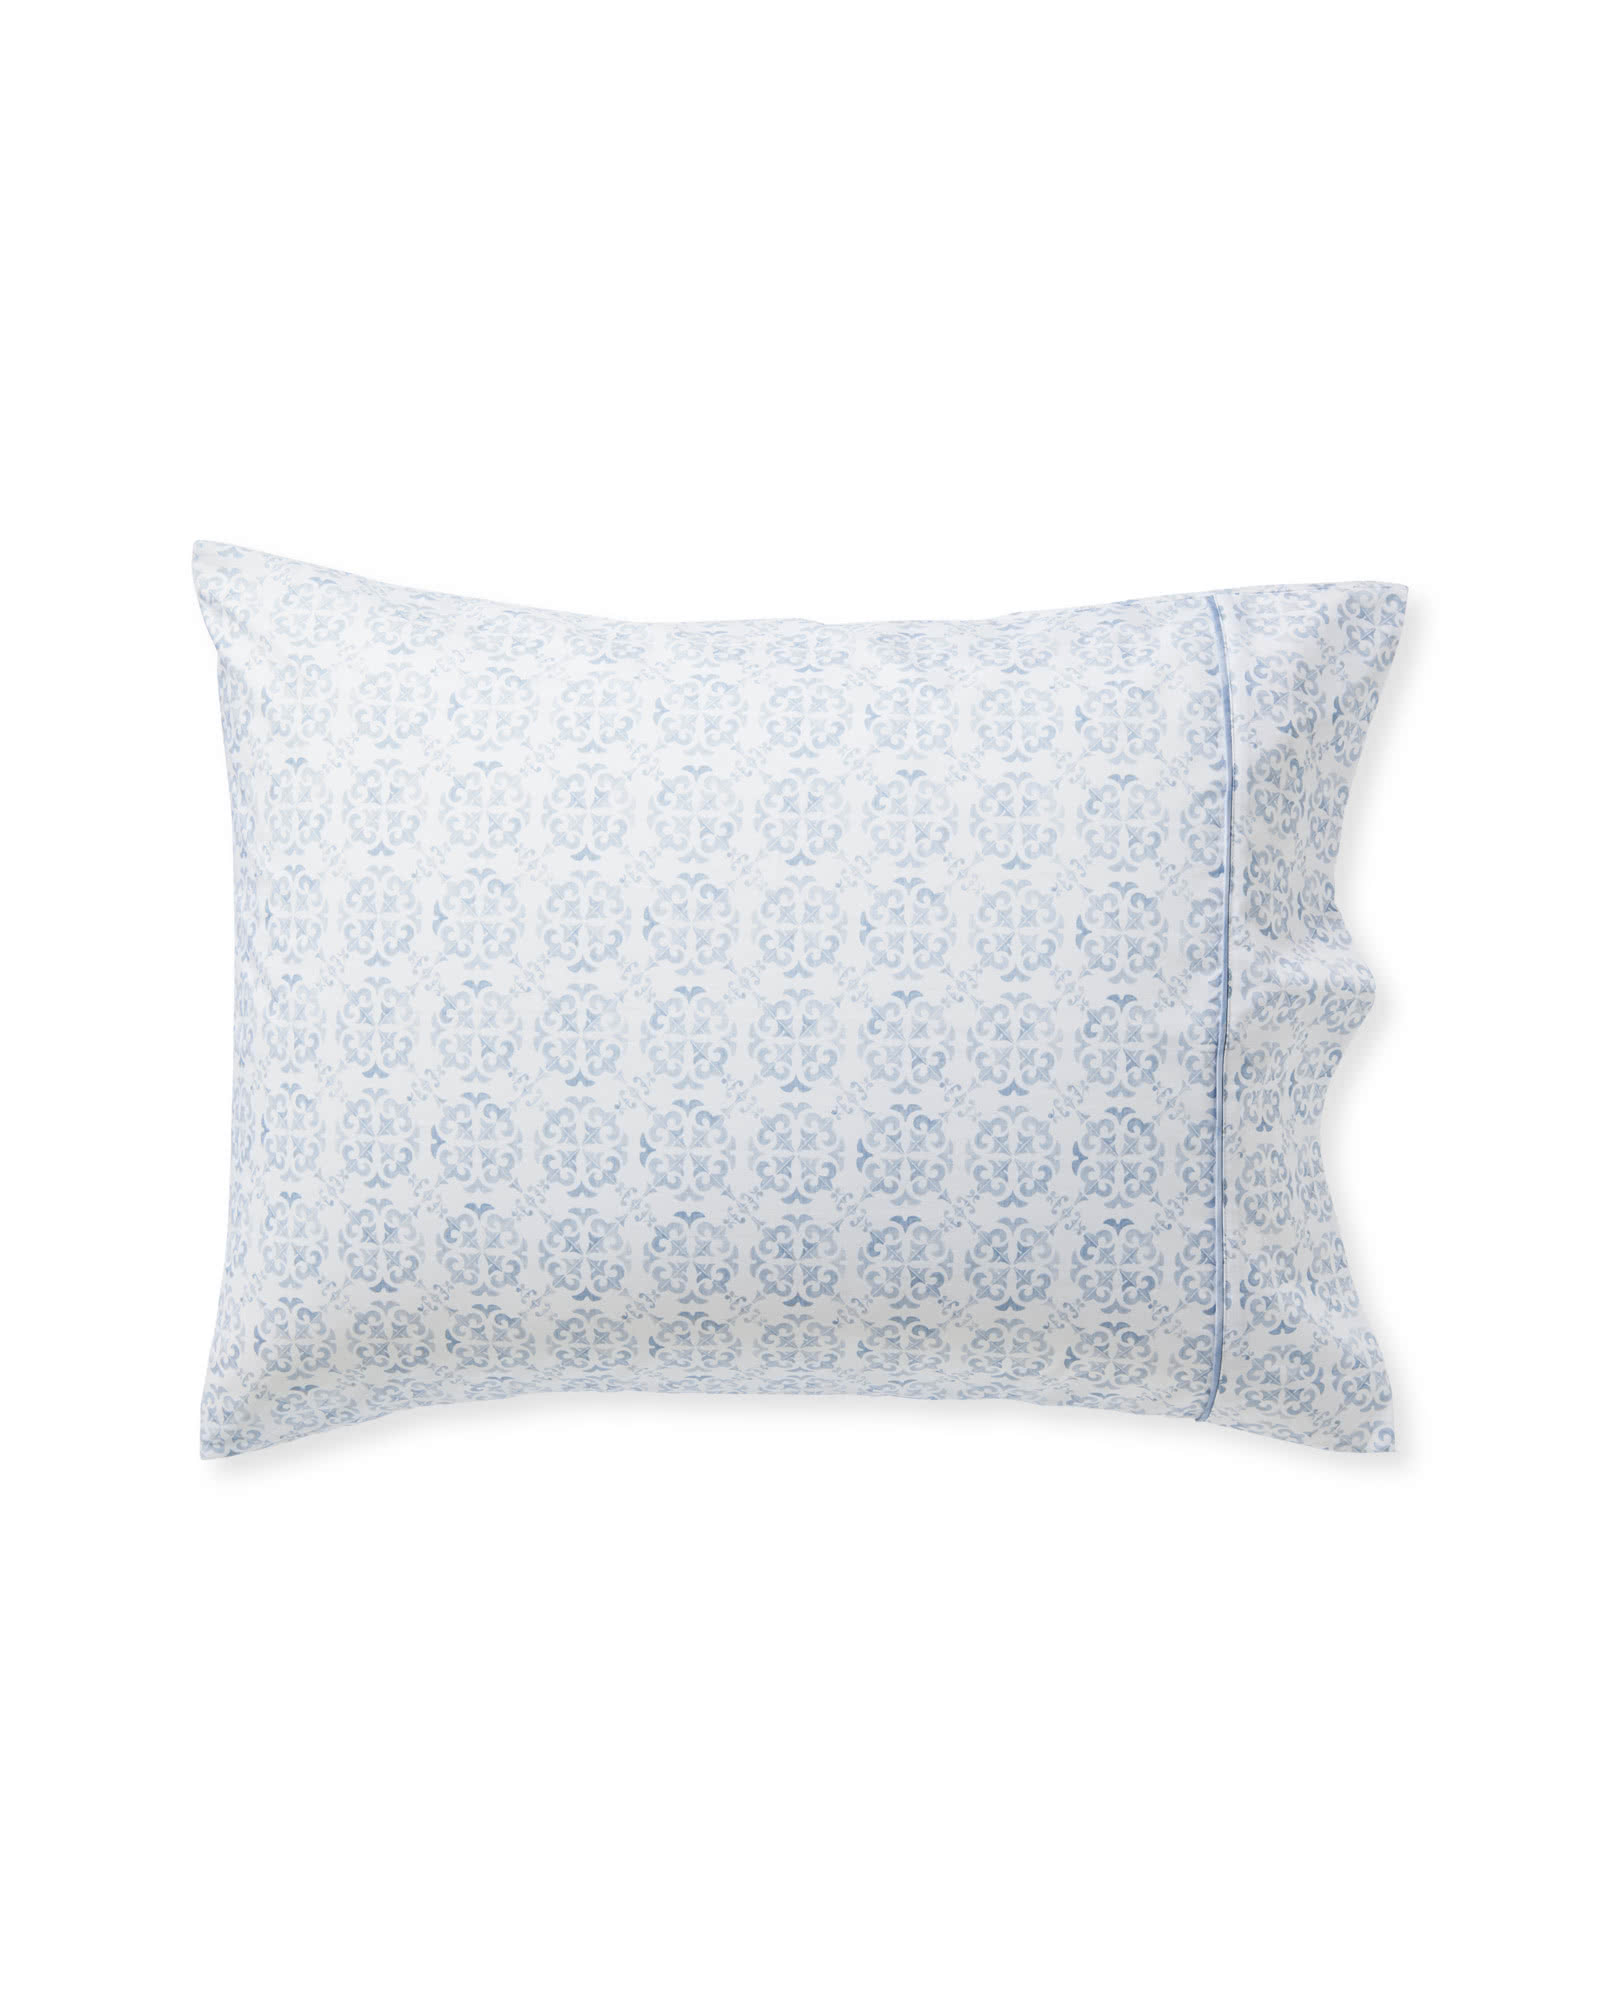 Wentworth Pillowcases (Set of 2), Coastal Blue